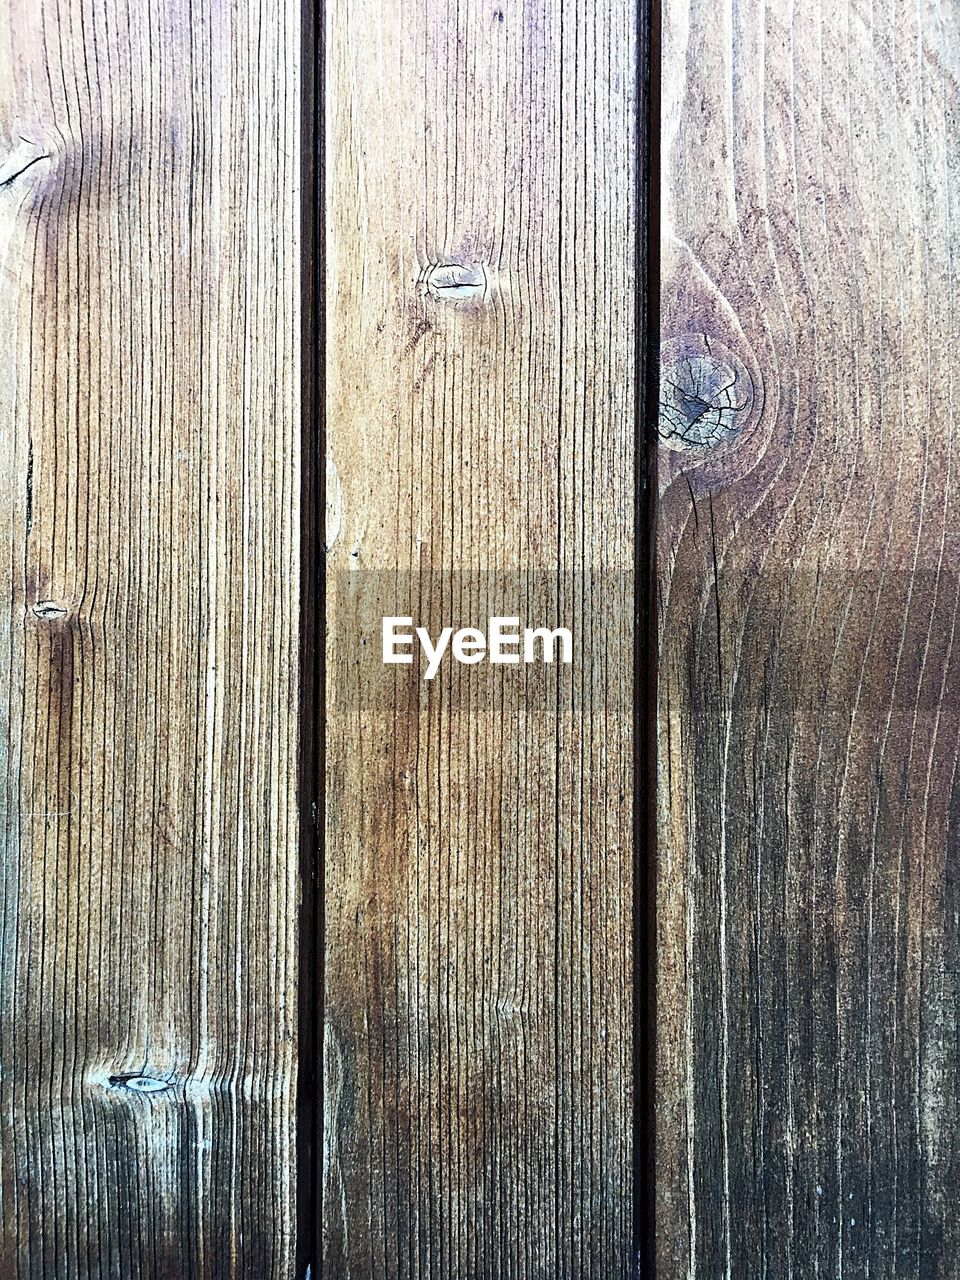 wood - material, backgrounds, full frame, textured, close-up, no people, day, door, pattern, weathered, outdoors